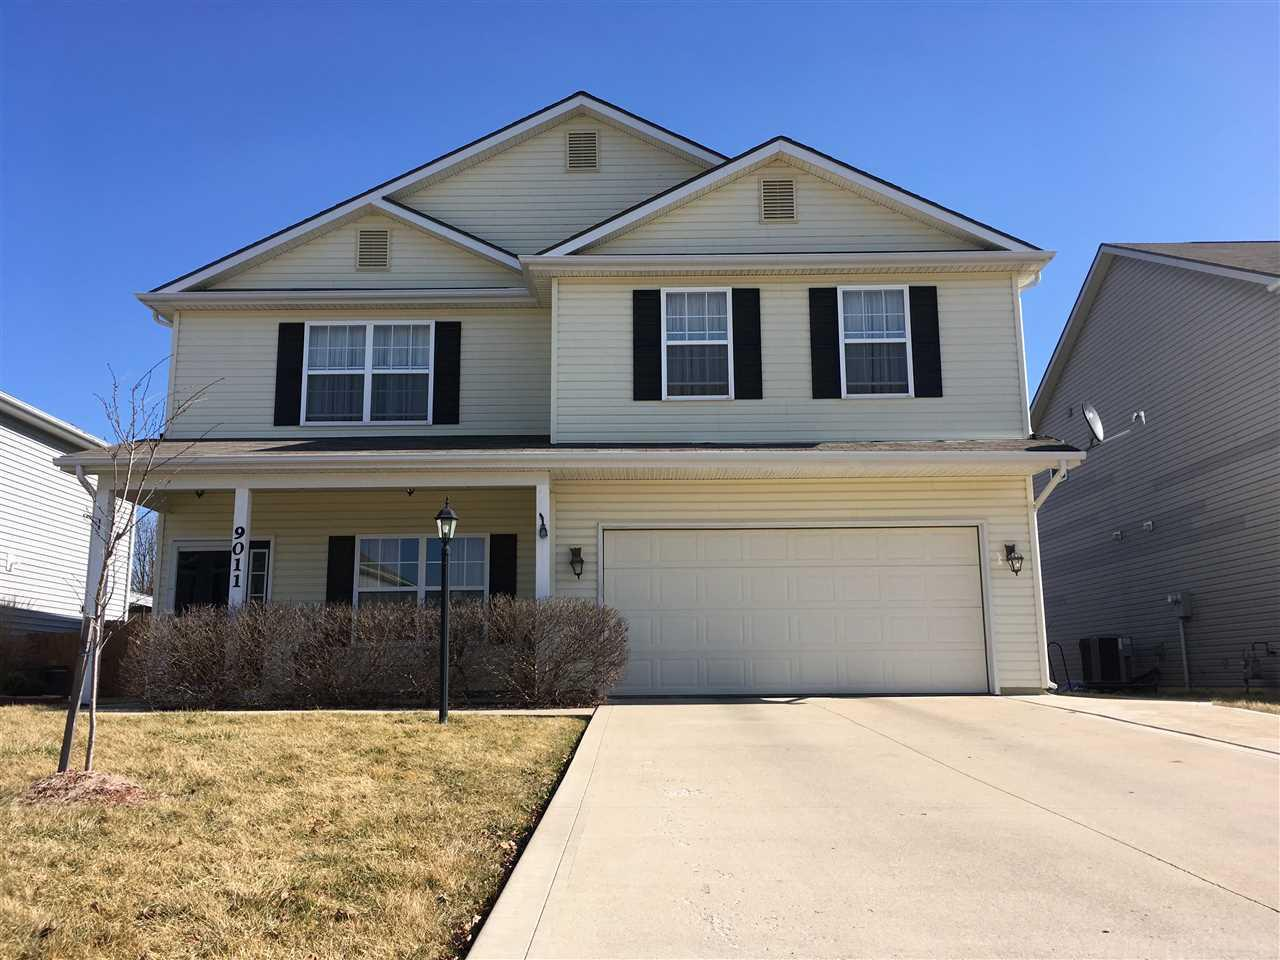 9011 Sunflower Cove, Fort Wayne, IN 46819